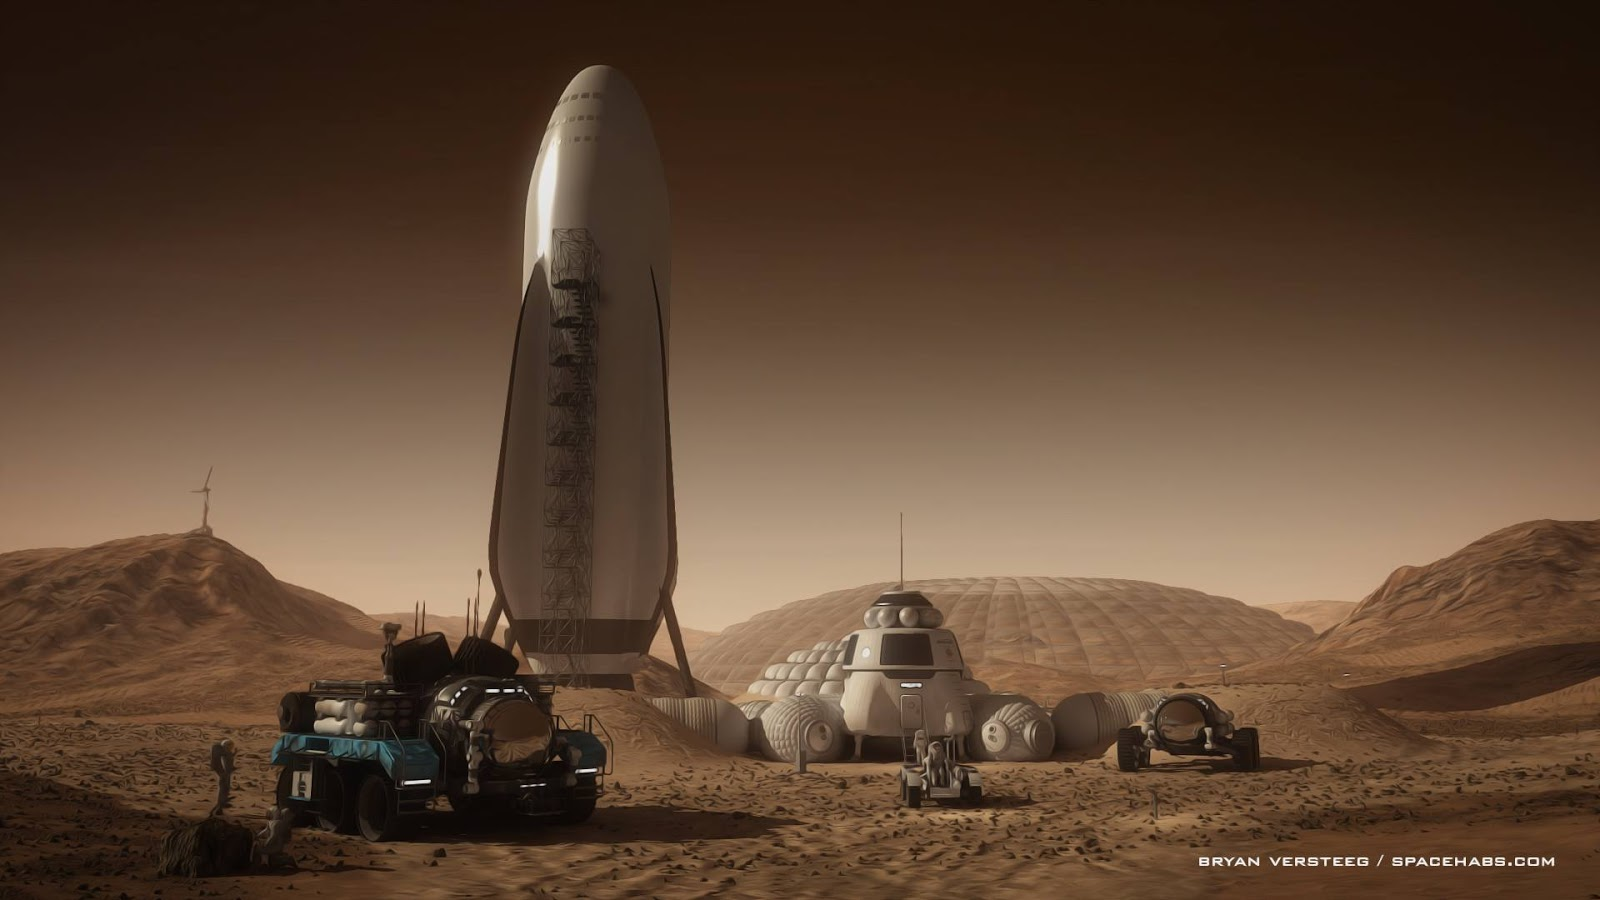 Human Mars Spacex Spaceship At Mars Base By Bryan Versteeg